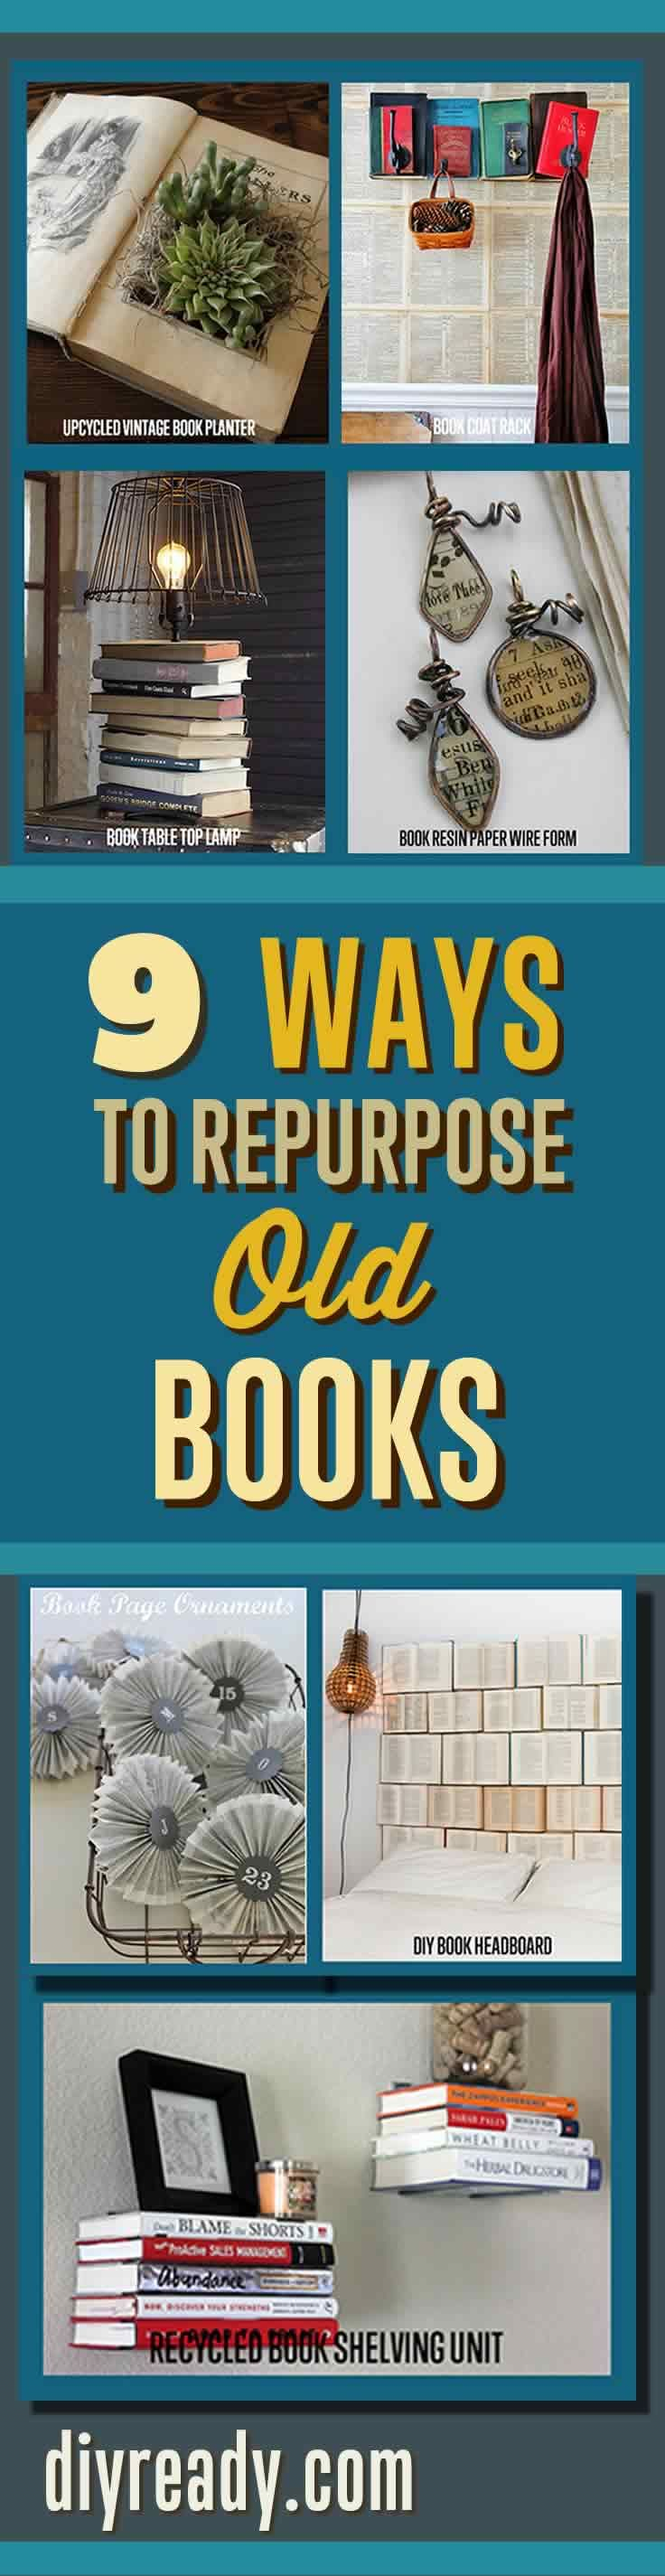 Craft Projects Ideas with Old Books. Repurposed Items can can used to make creative home decor. Check out these DIY Projects Tutorials for Books  for Ideas >> http://diyready.com/diy-projects-made-from-old-books/